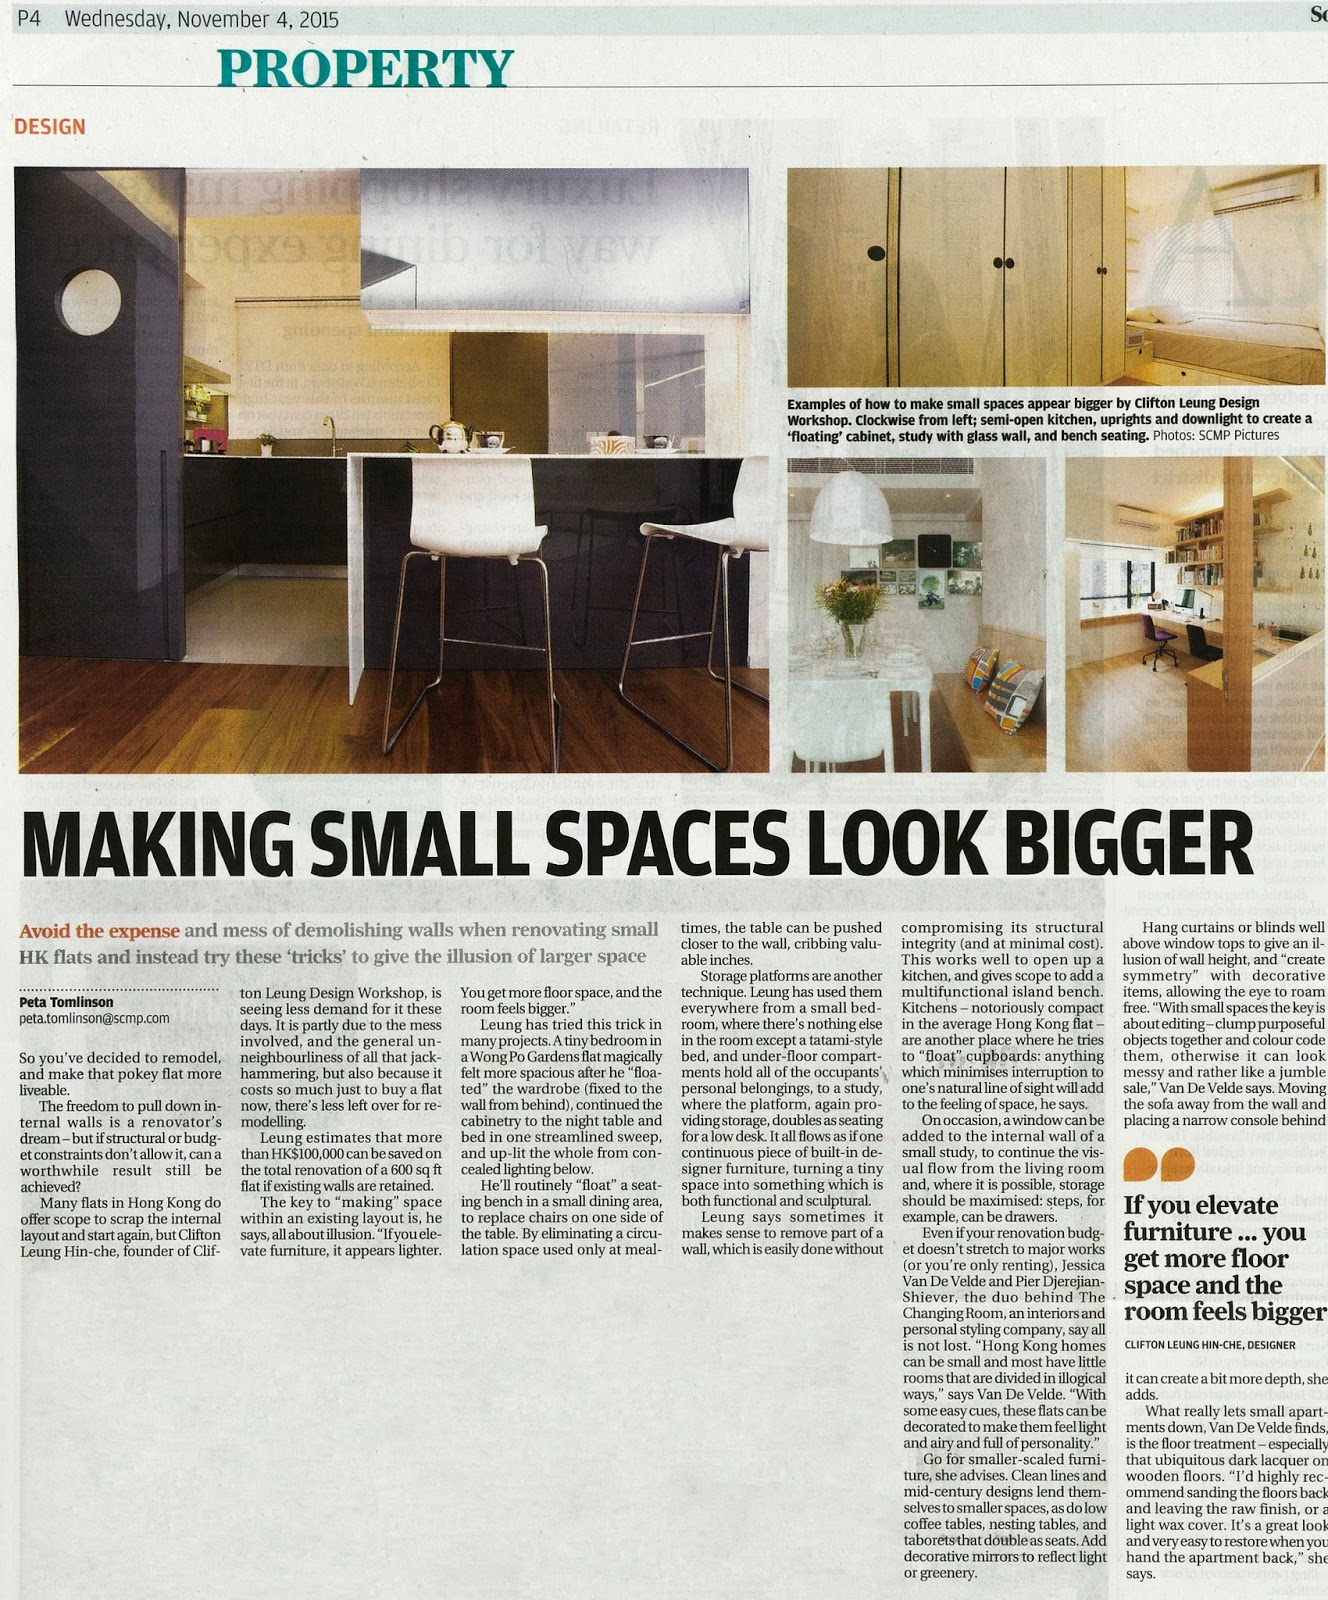 Hong kong interior design tips ideas clifton leung making small spaces look bigger - Making small spaces look bigger plan ...